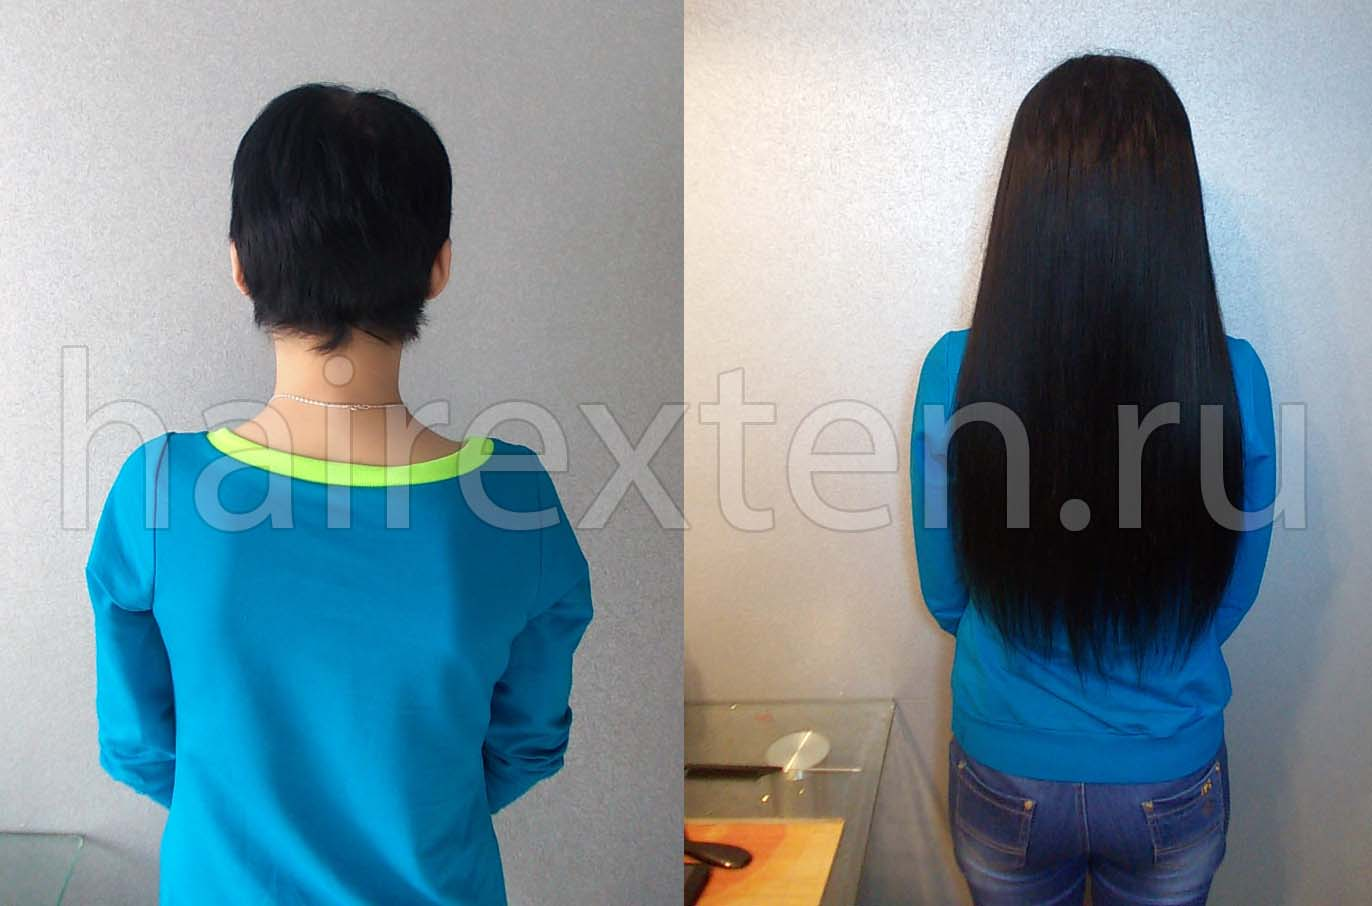 hair-extension-02-02-14.jpg